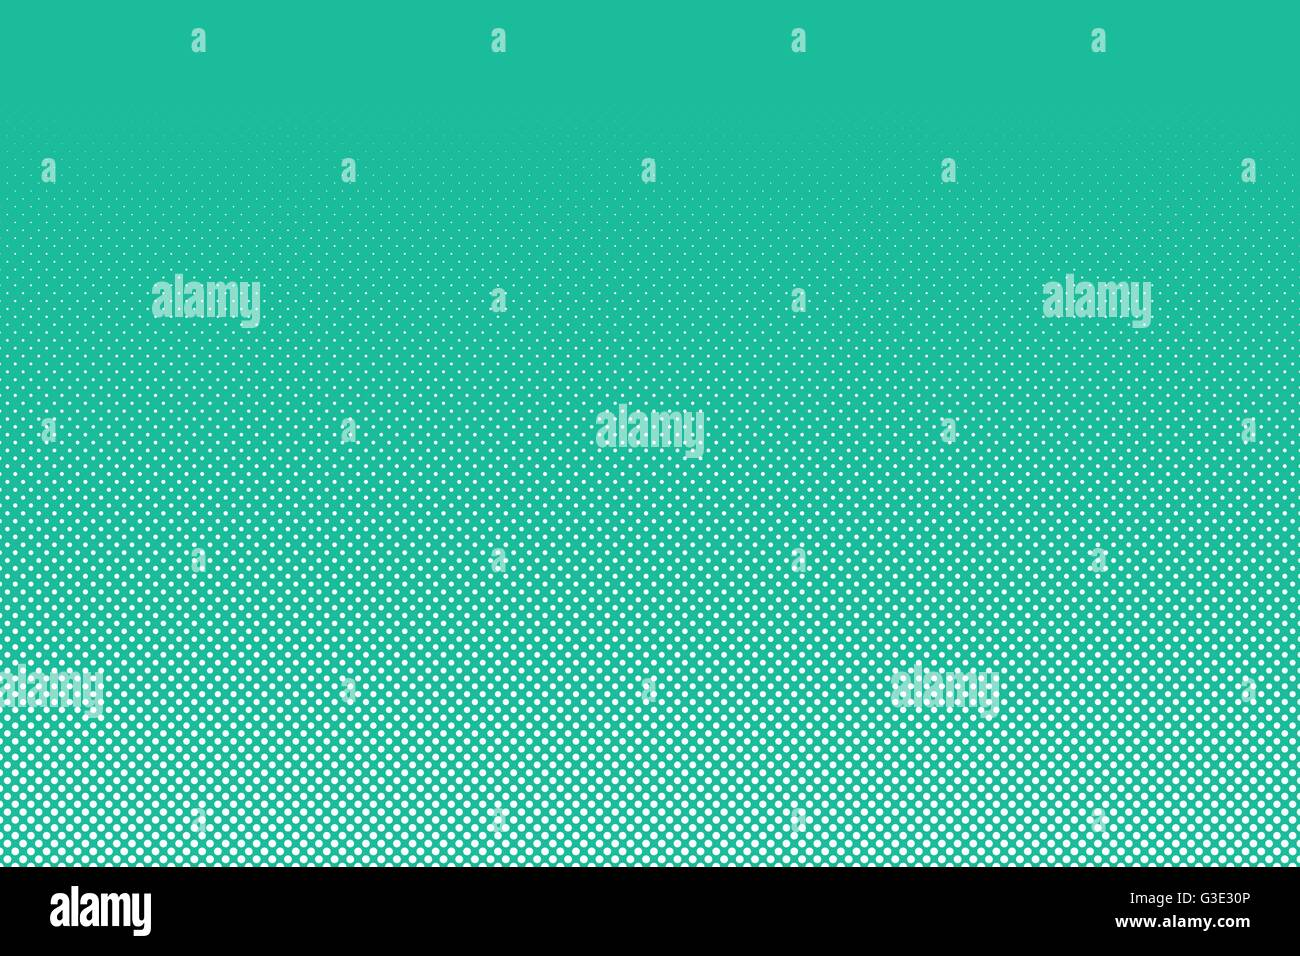 Abstract dotted background. White dots on turquoise background. Vector illustration of abstract polka dots pattern - Stock Image